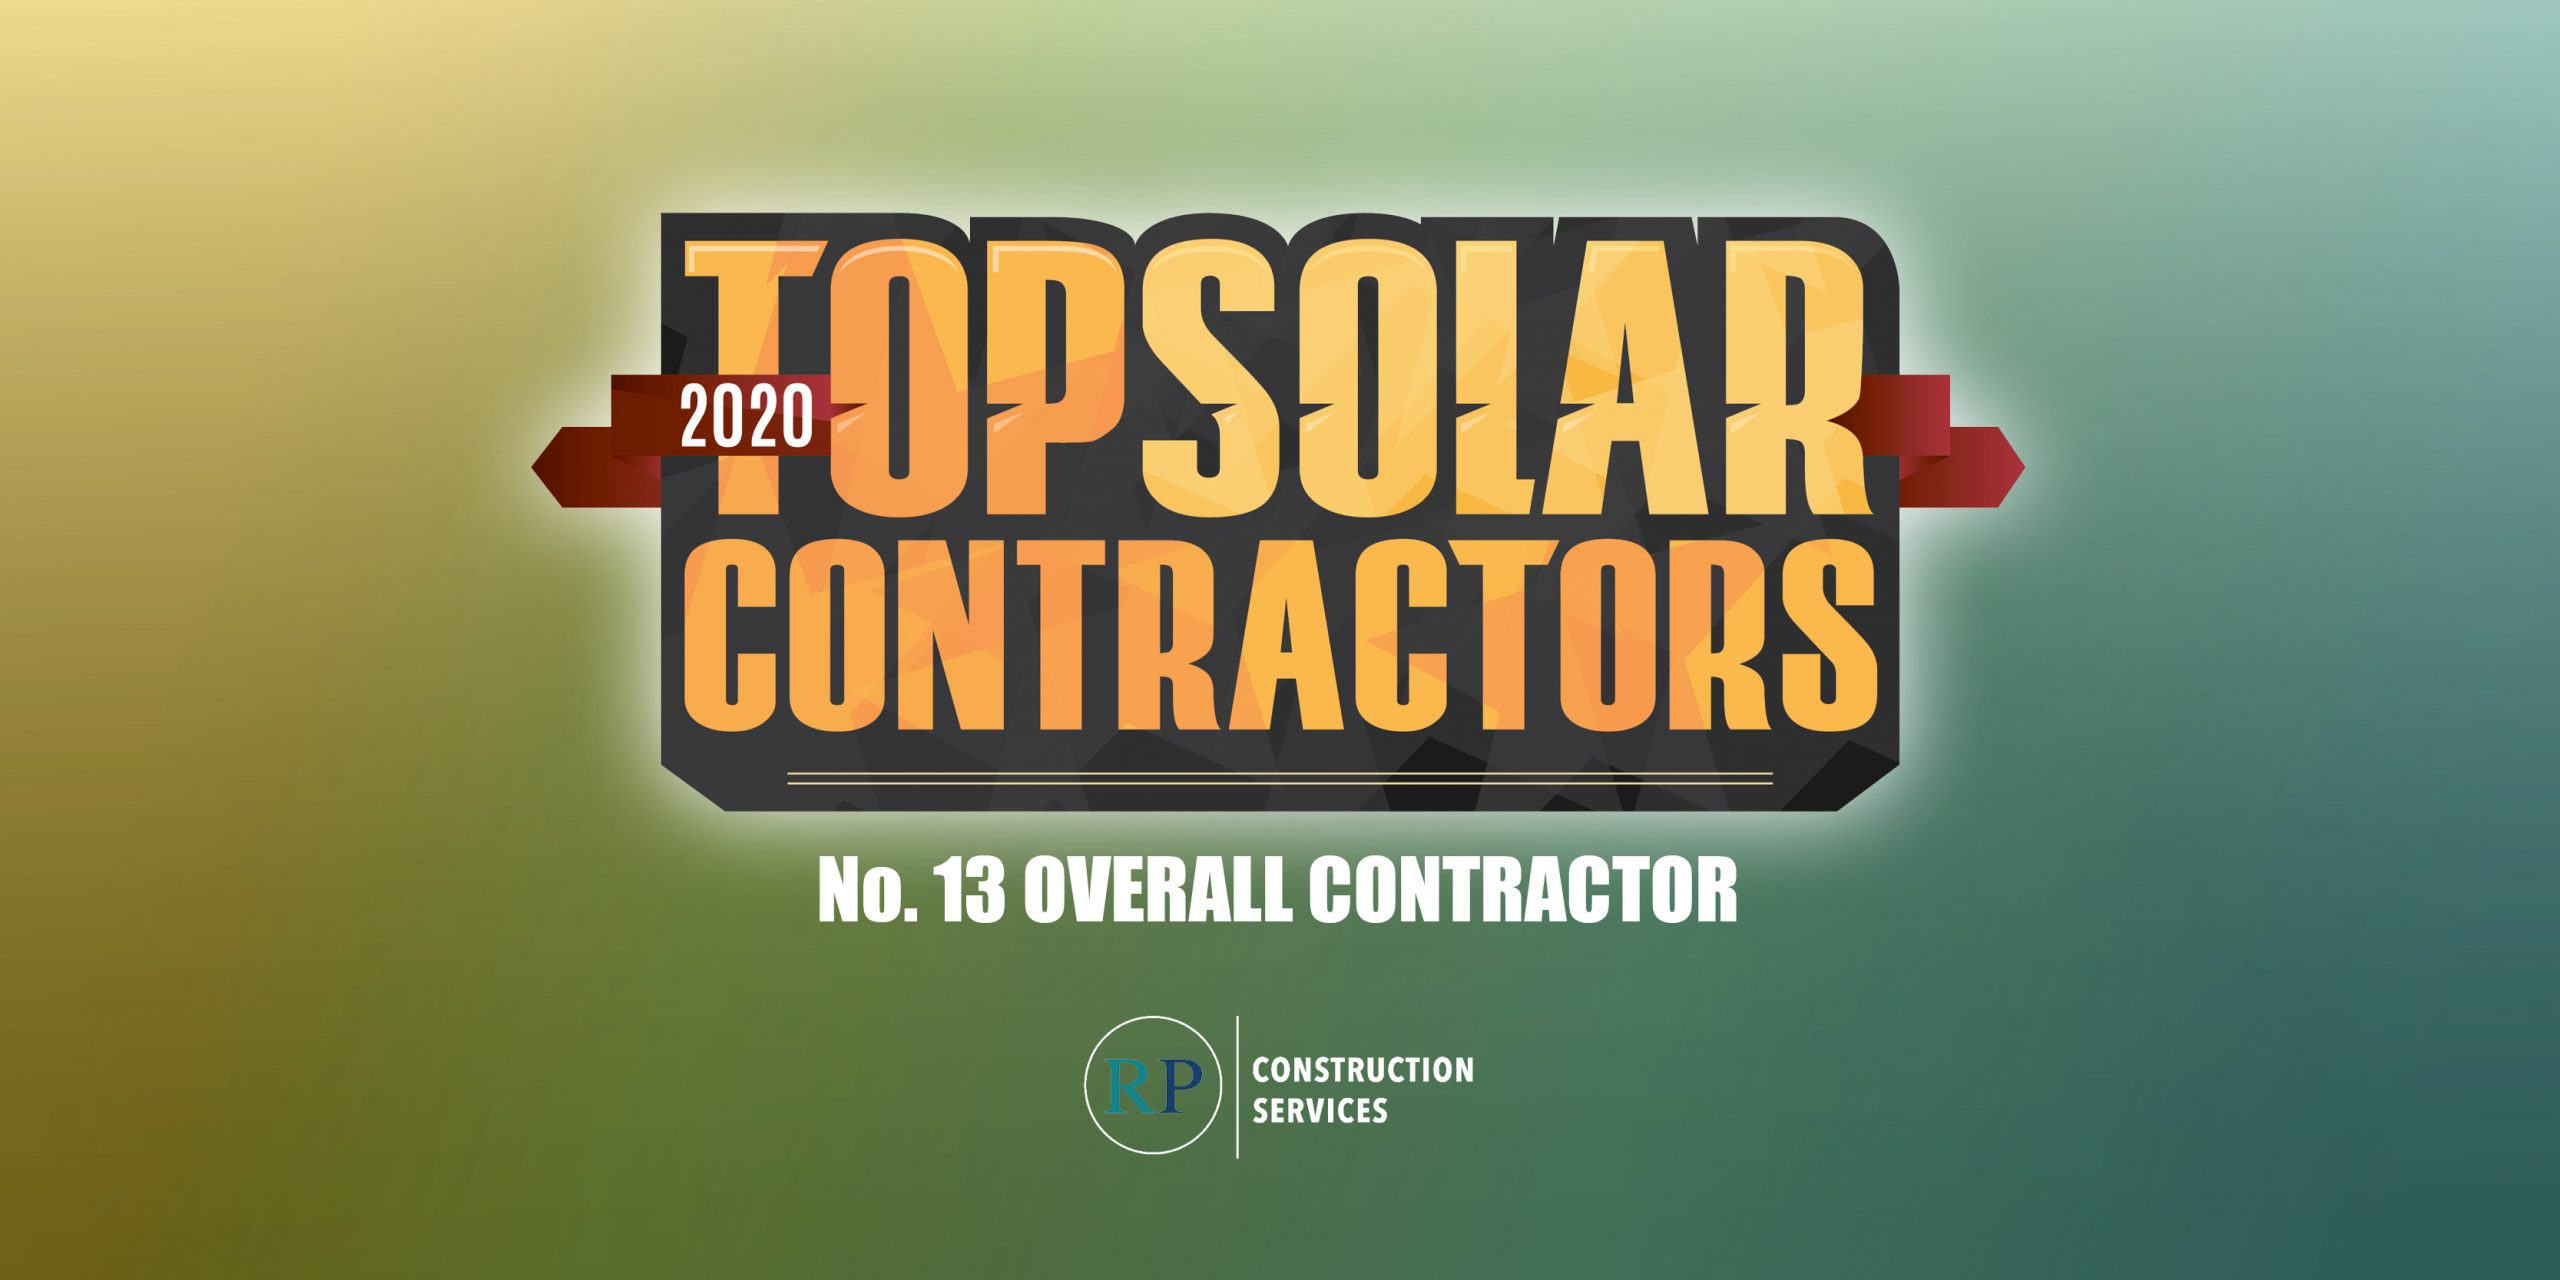 RPCS Ranks No. 13 on 2020 Top Solar Contractors List